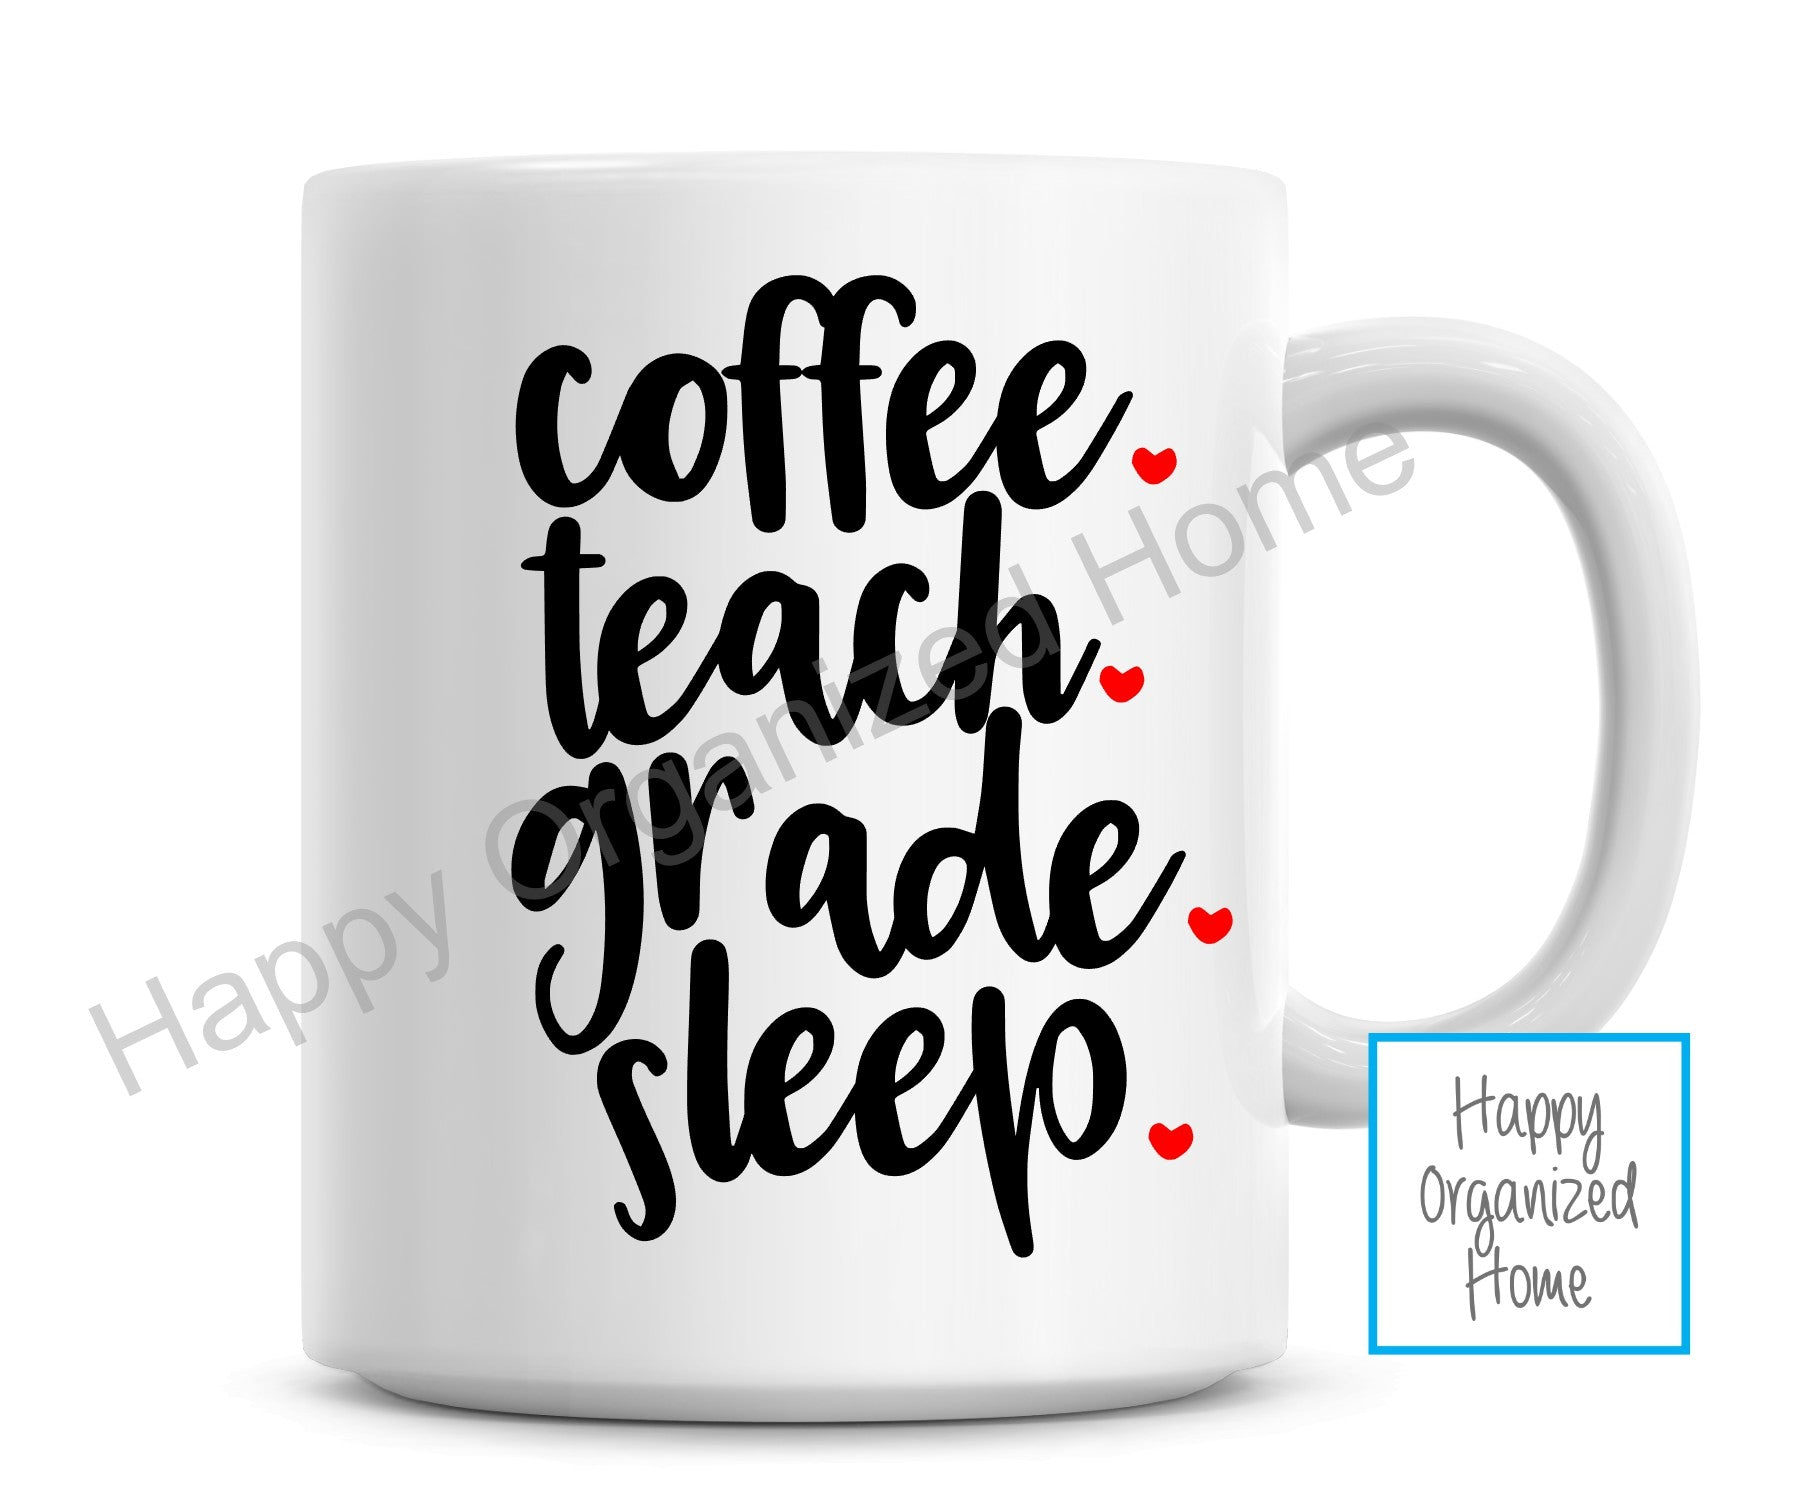 Coffee Teach Grade Sleep Mug